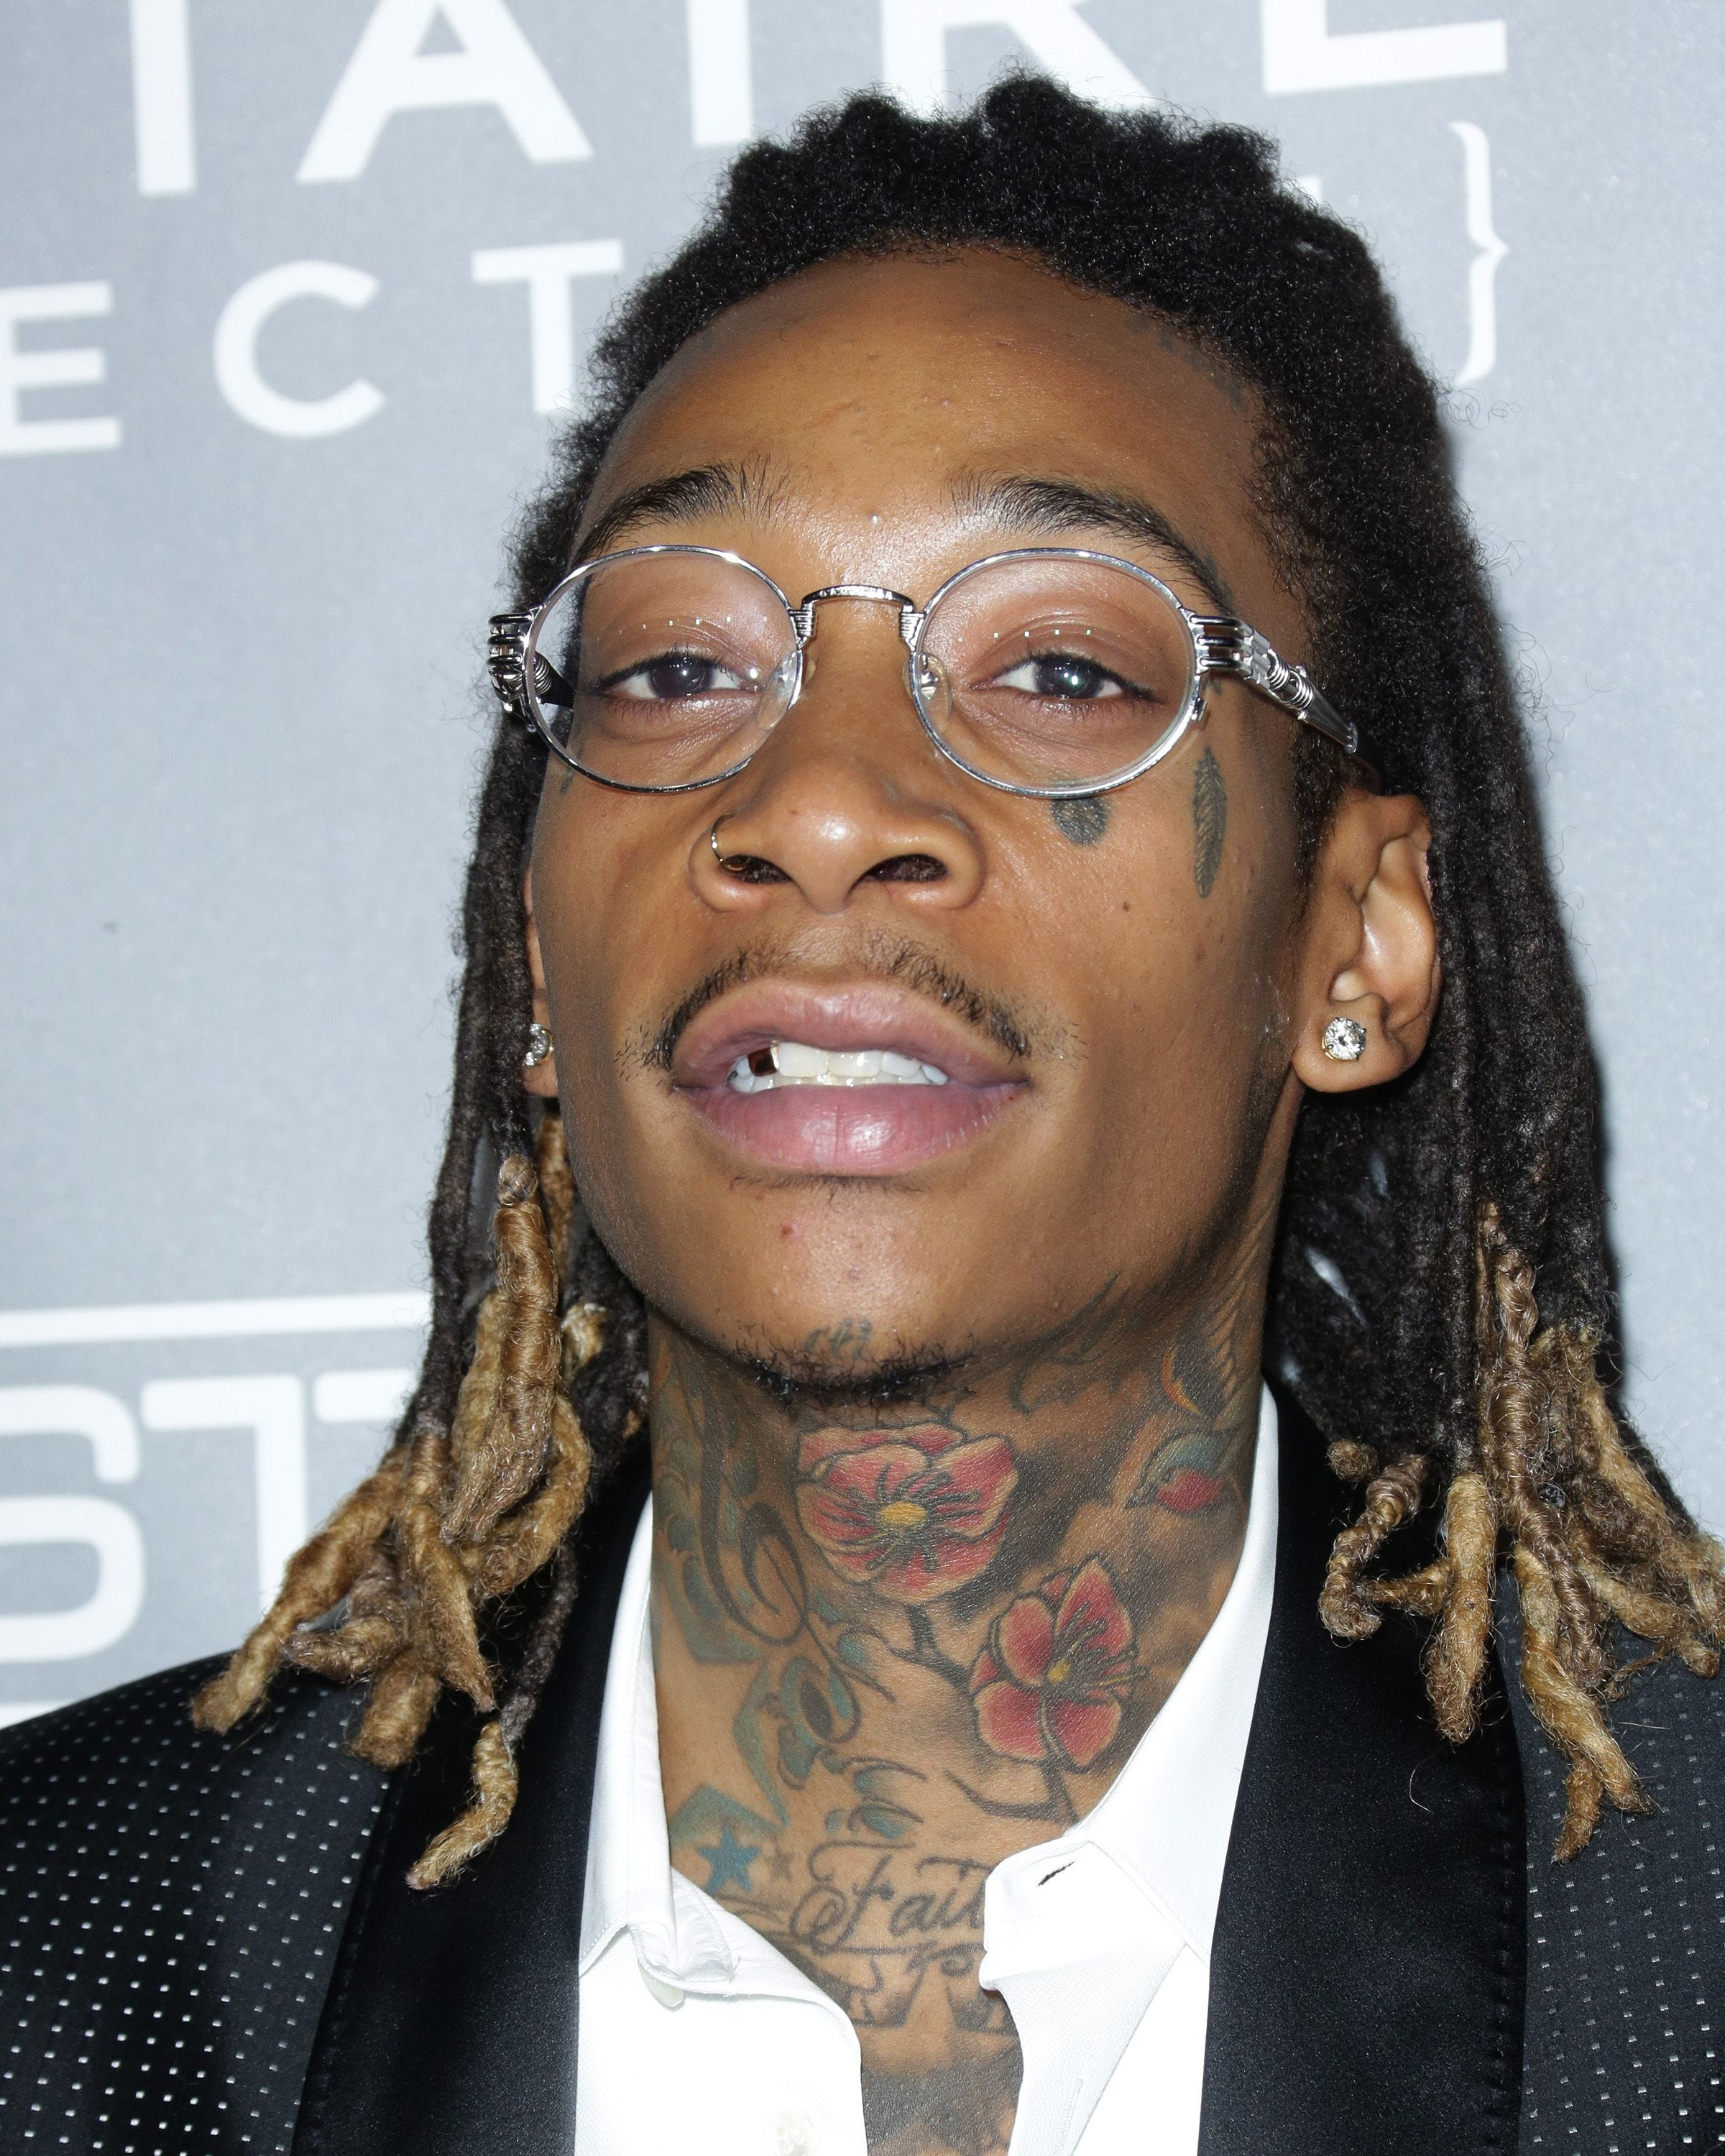 wiz khalifa new hair style wiz khalifa new hairstyle hairstyles by unixcode 4009